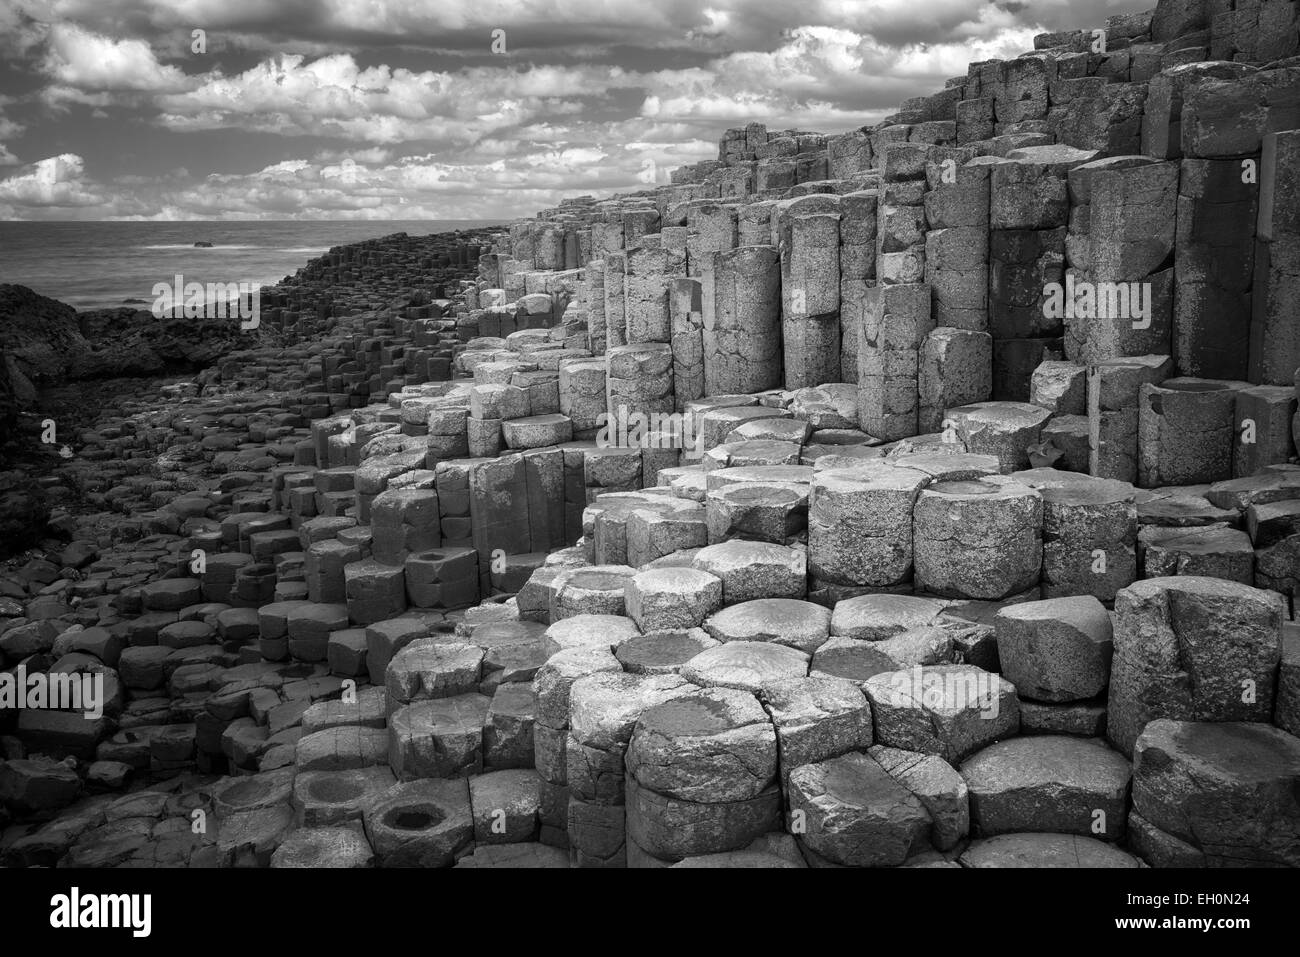 Giants Causeway. Ireland - Stock Image